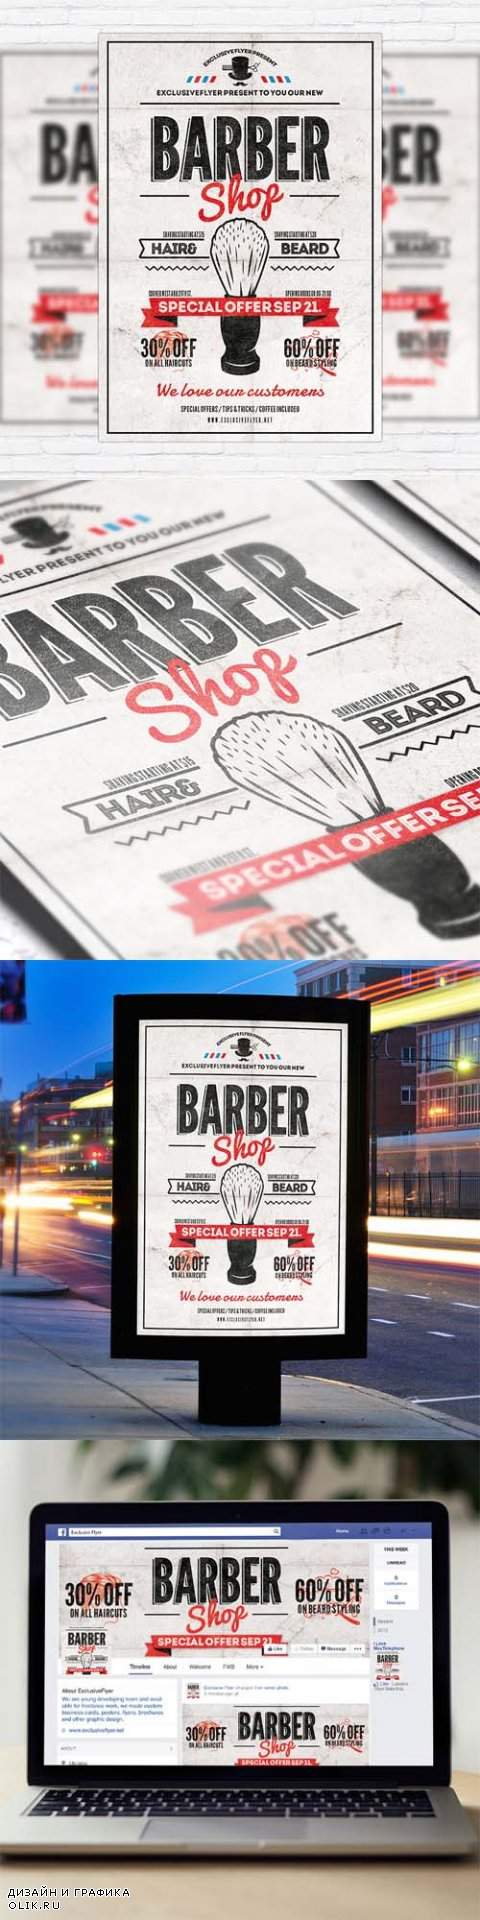 Flyer Template - Barber Shop Vol 2 + Facebook Cover